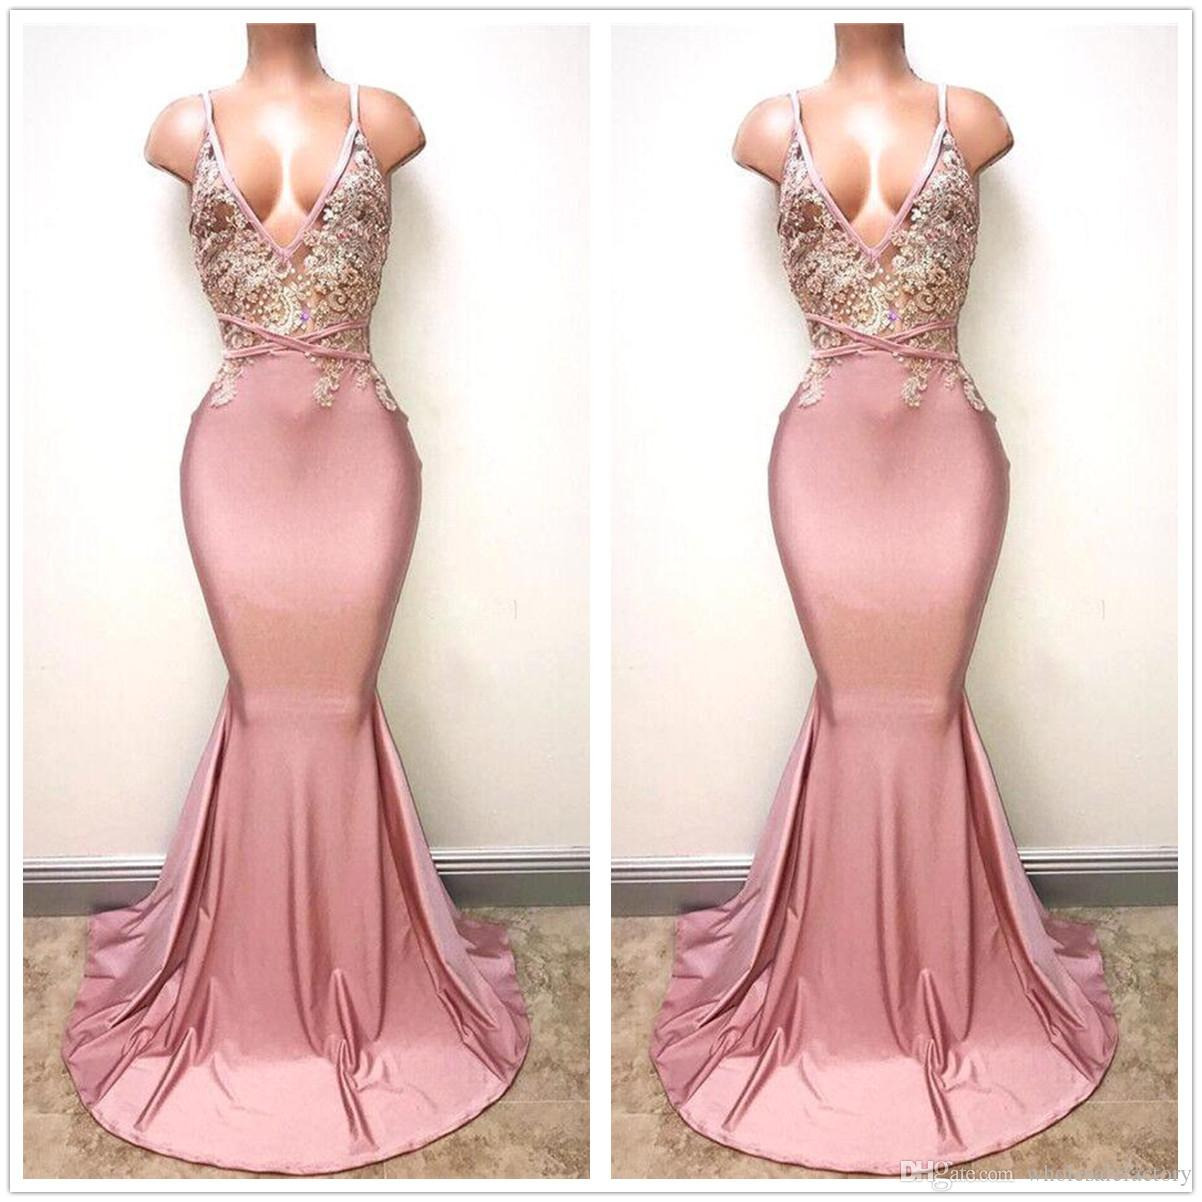 878f92e656 Sexy Blush Pink Deep V Neck Satin Mermaid Prom Dresses 2018 Lace Applique  Beaded Backless Formal Evening Gowns BA7166 White Prom Dresses Uk 2015 Prom  Dress ...